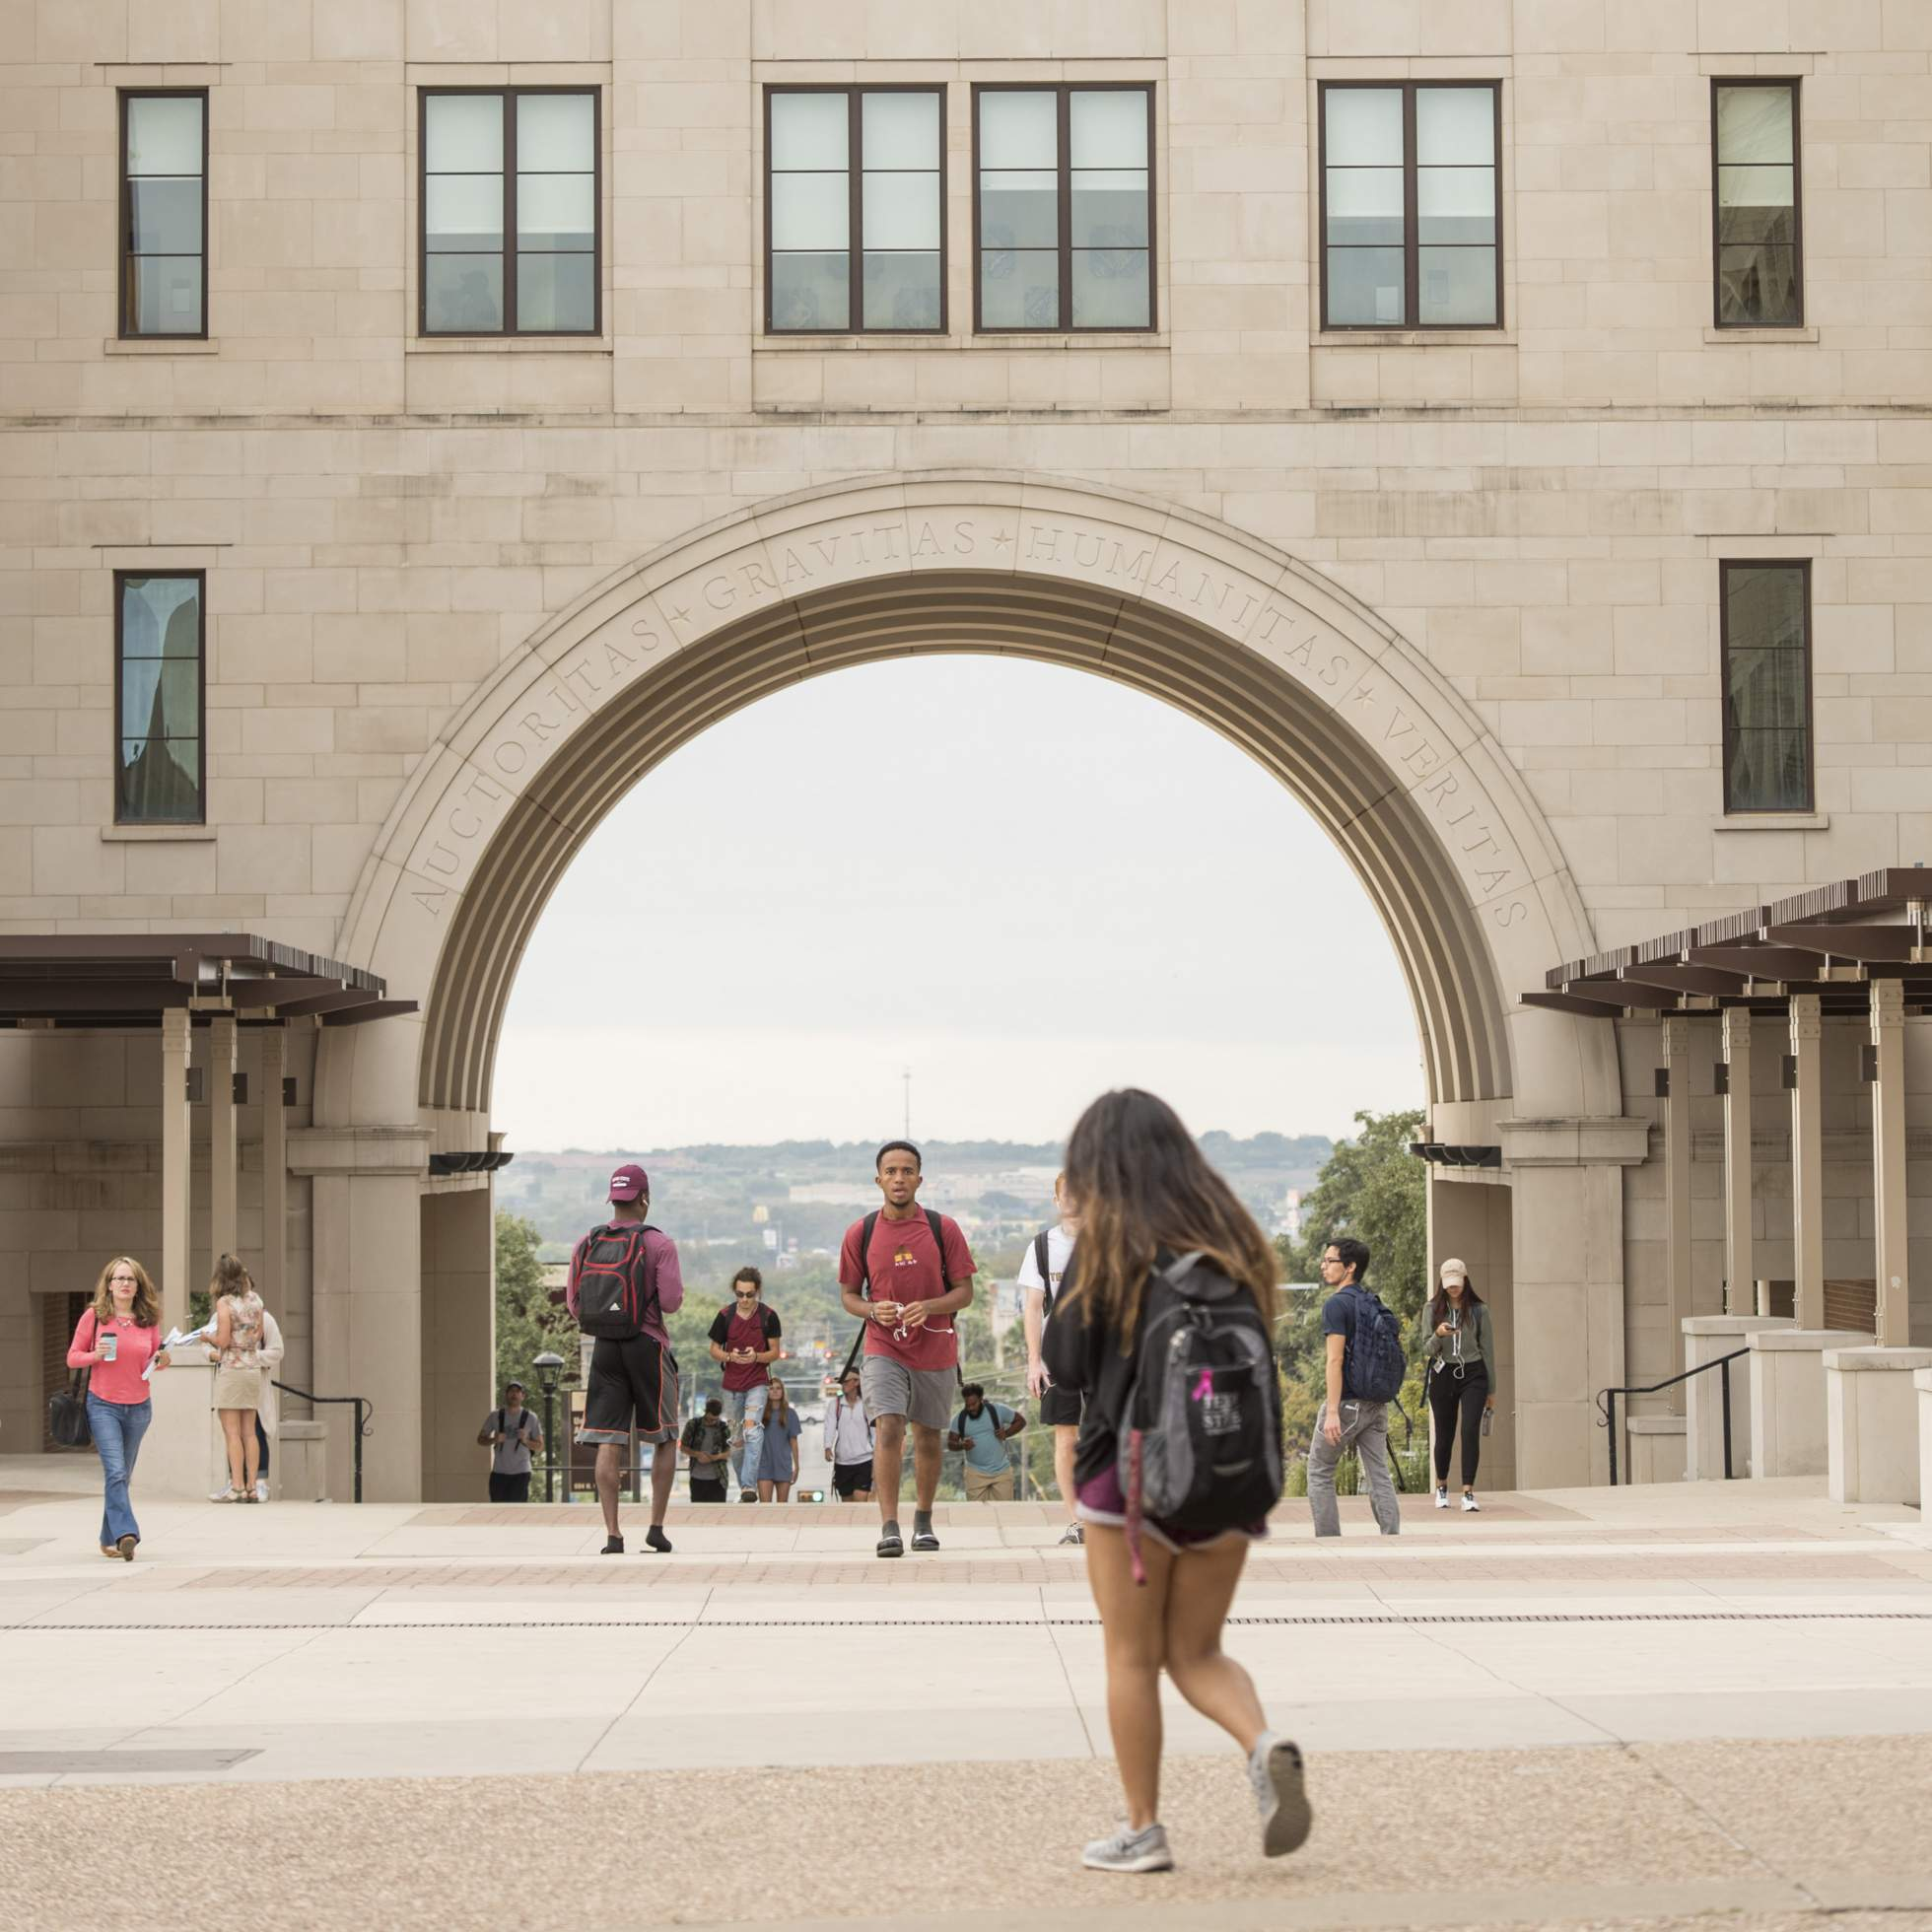 Students walking through the UAC arch.